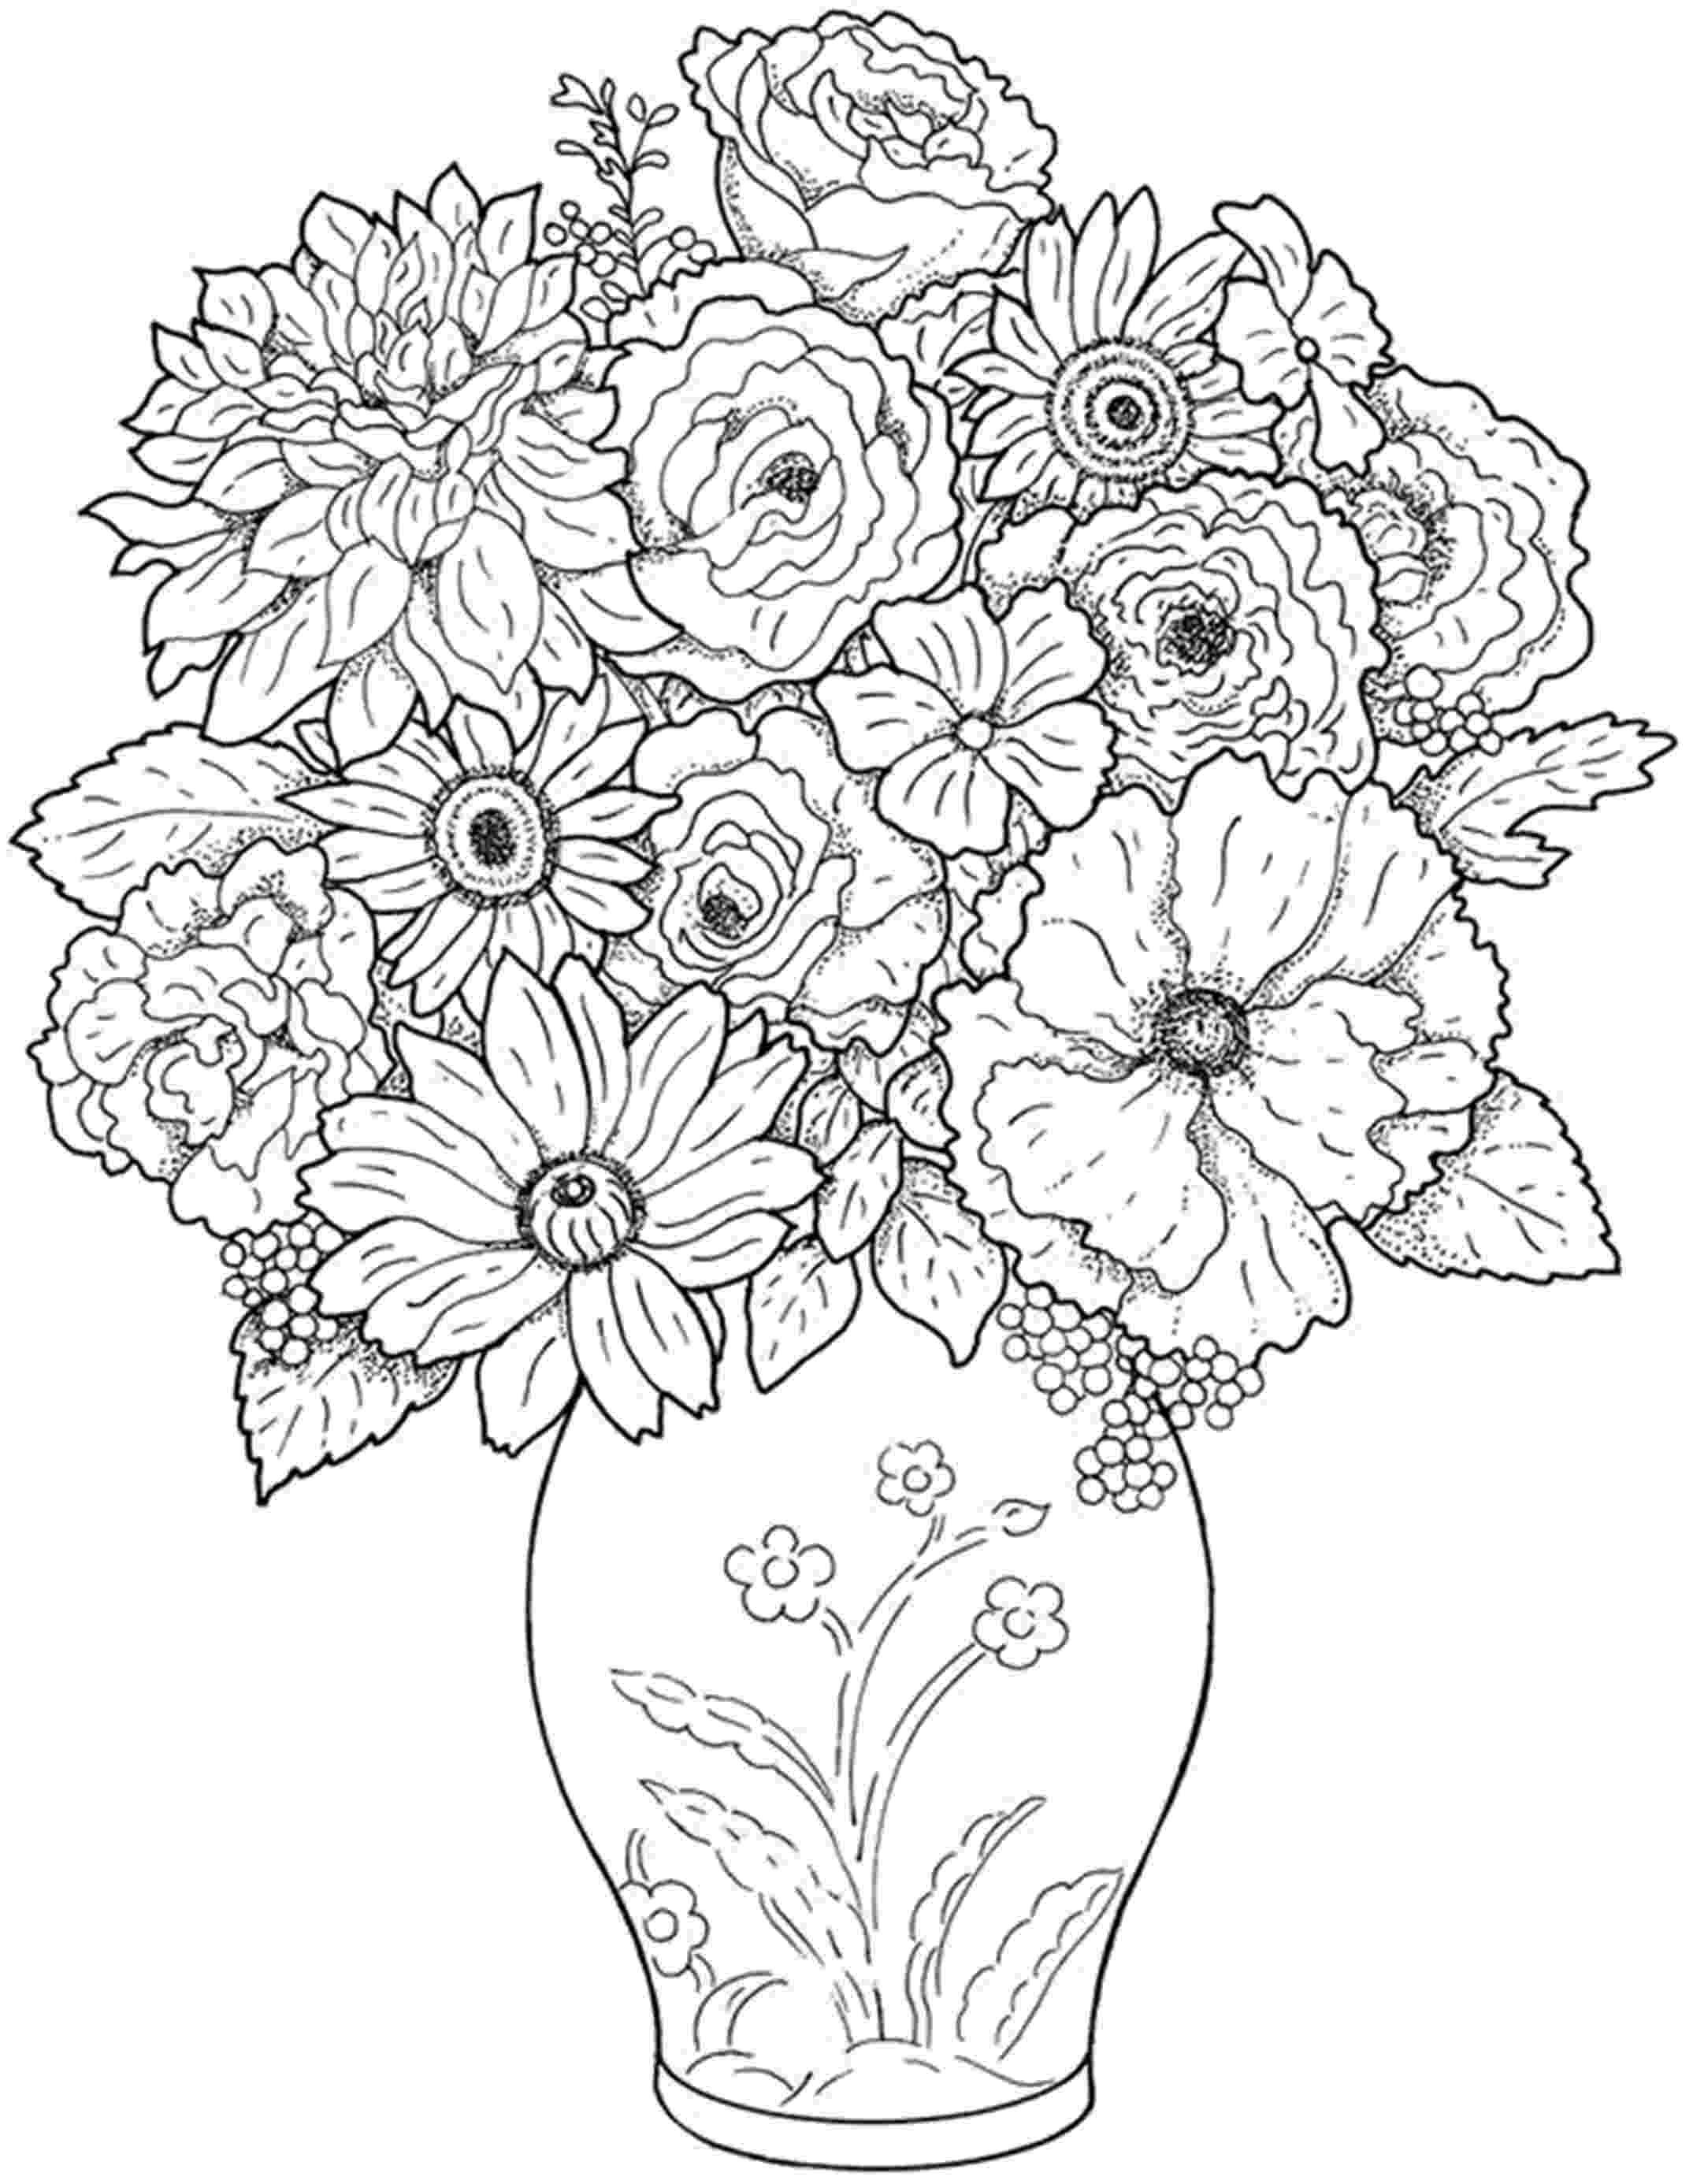 flowers printable coloring pages free printable flower coloring pages for kids best flowers coloring printable pages